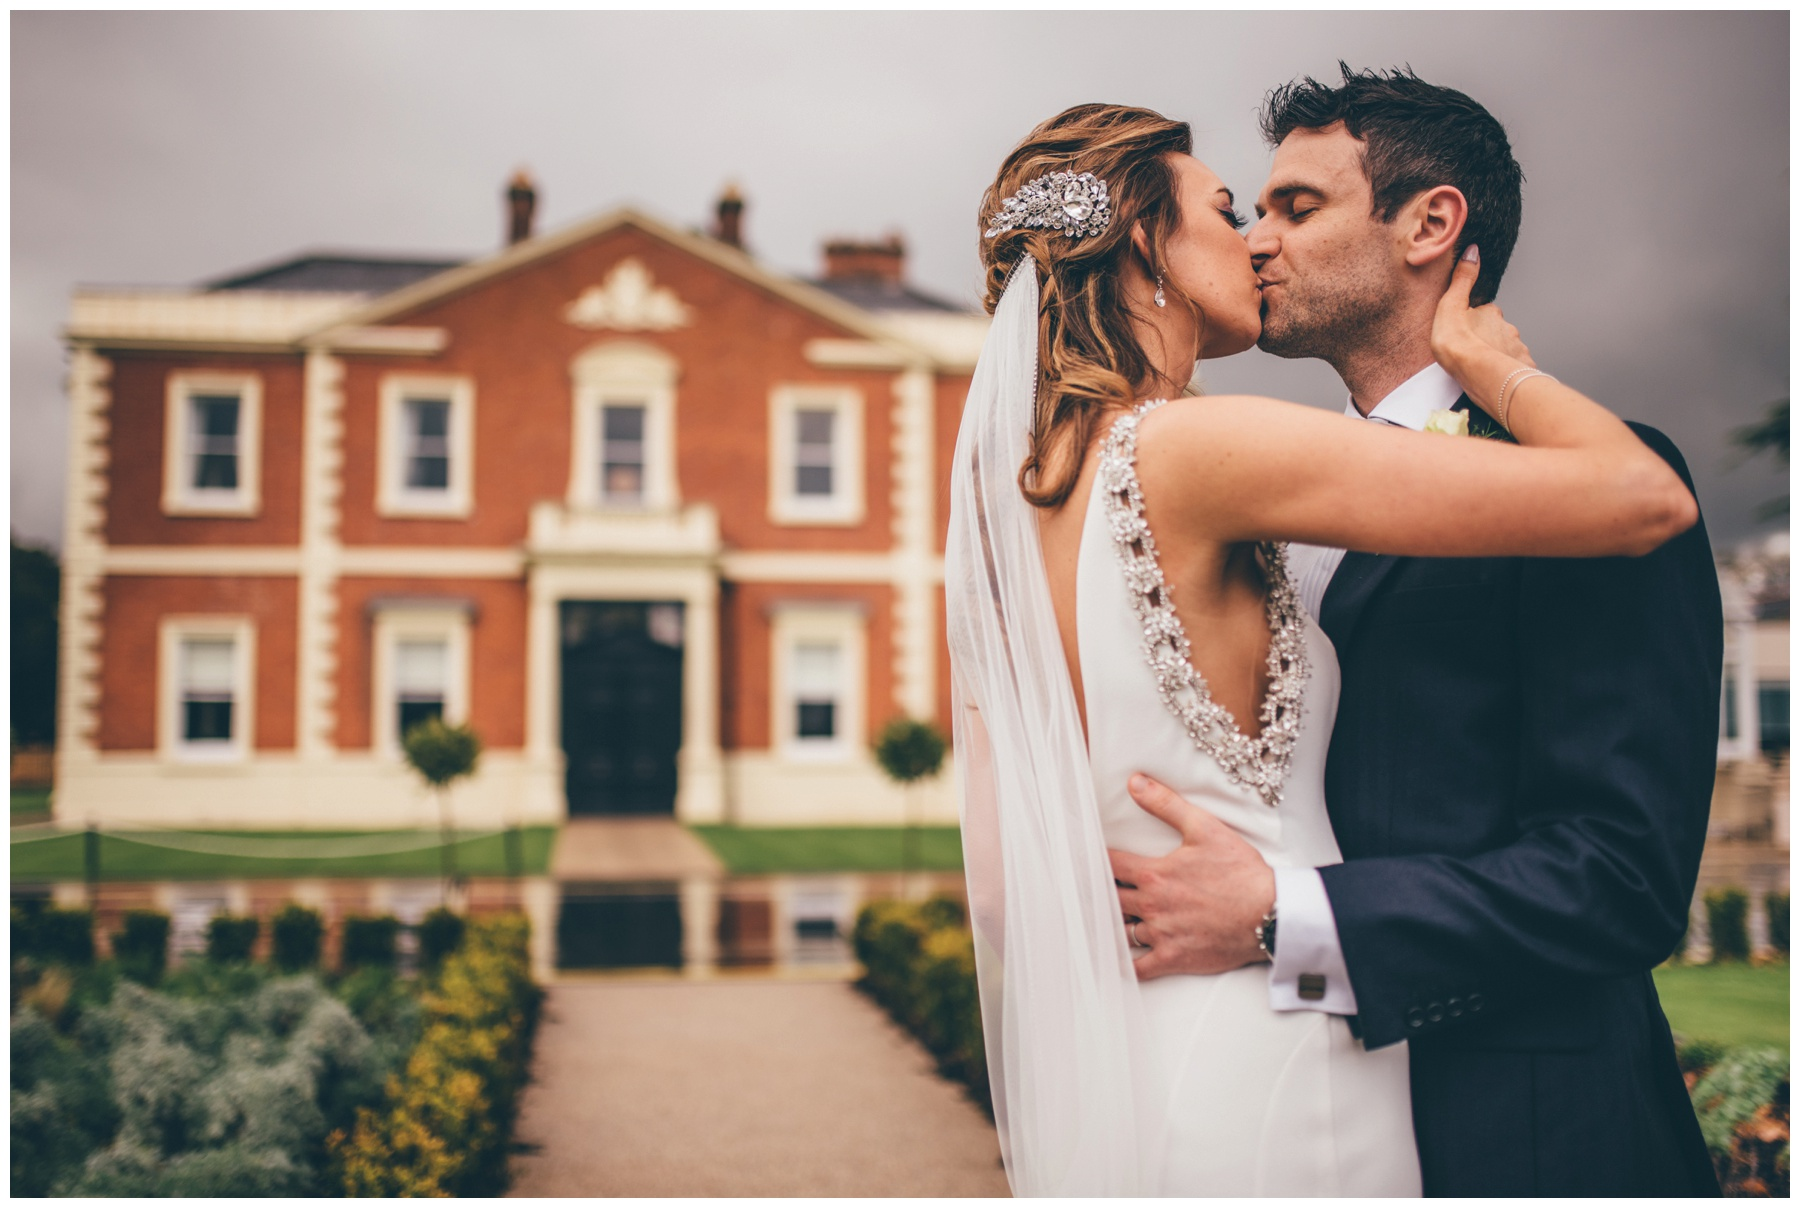 Bride and groom kiss in front of their wedding venue in Hoole, Chester. The Doubletree by Hilton in Cheshire.